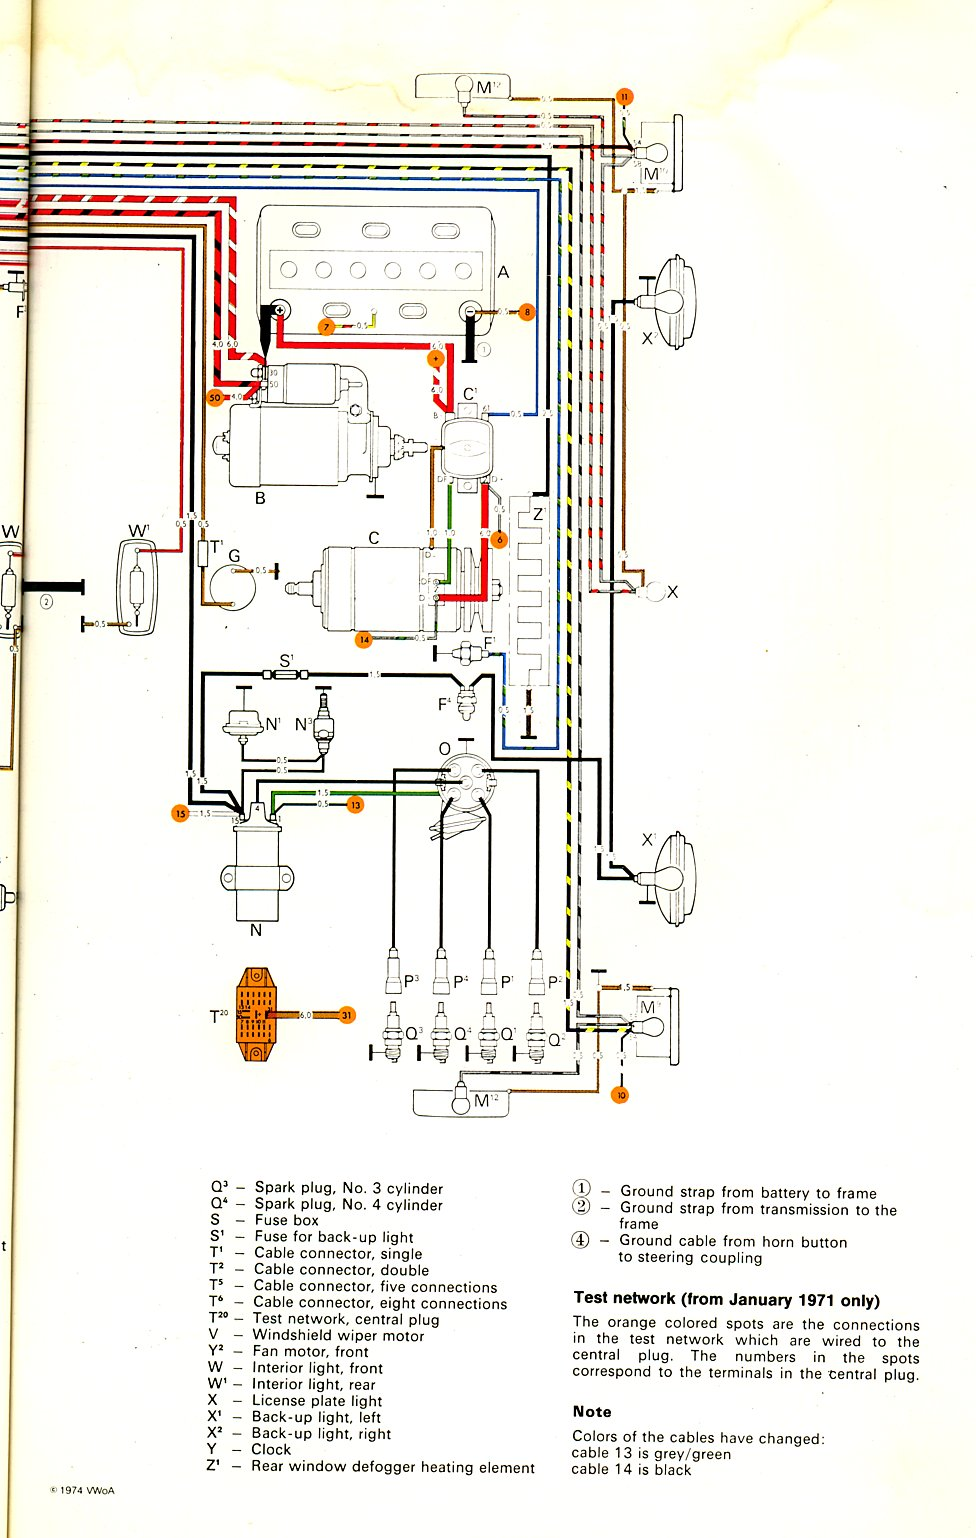 medium resolution of 1982 vanagon wiring diagram wiring diagram portal vanagon fuse panel 1980 vanagon wire diagrams